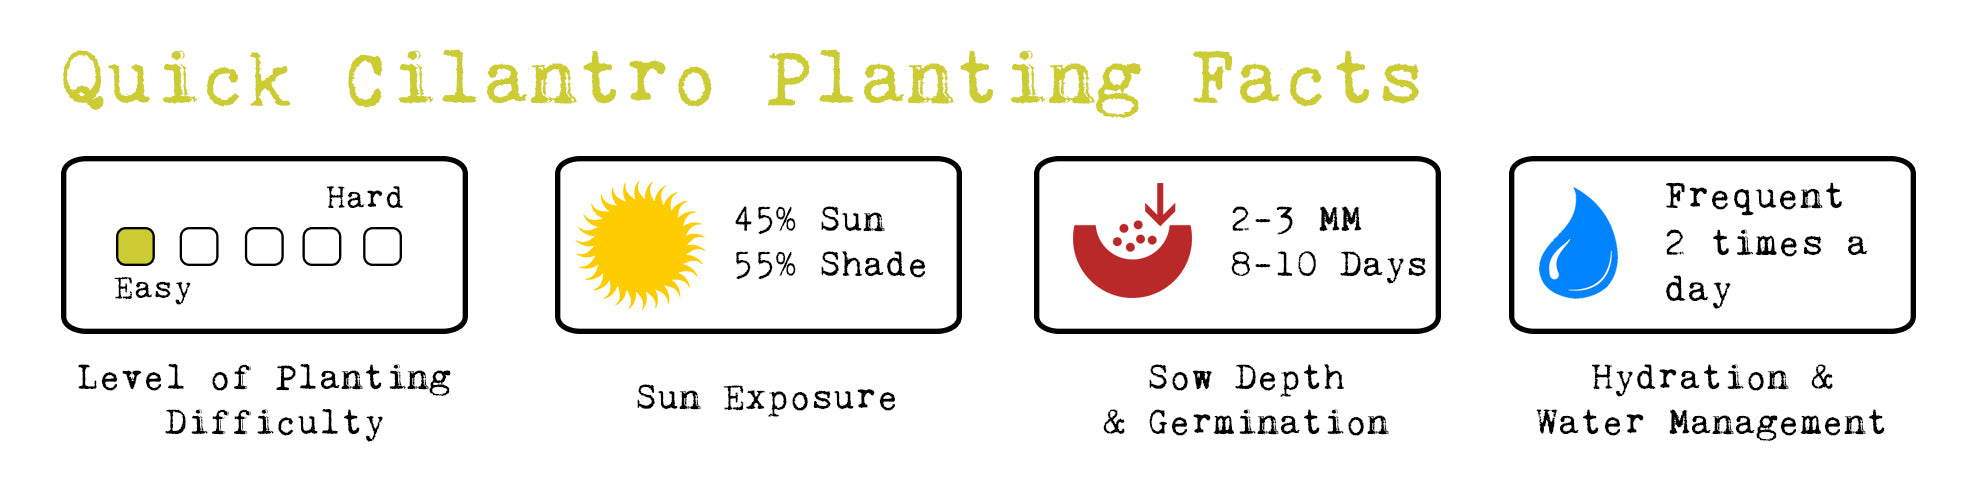 cilantro planting facts